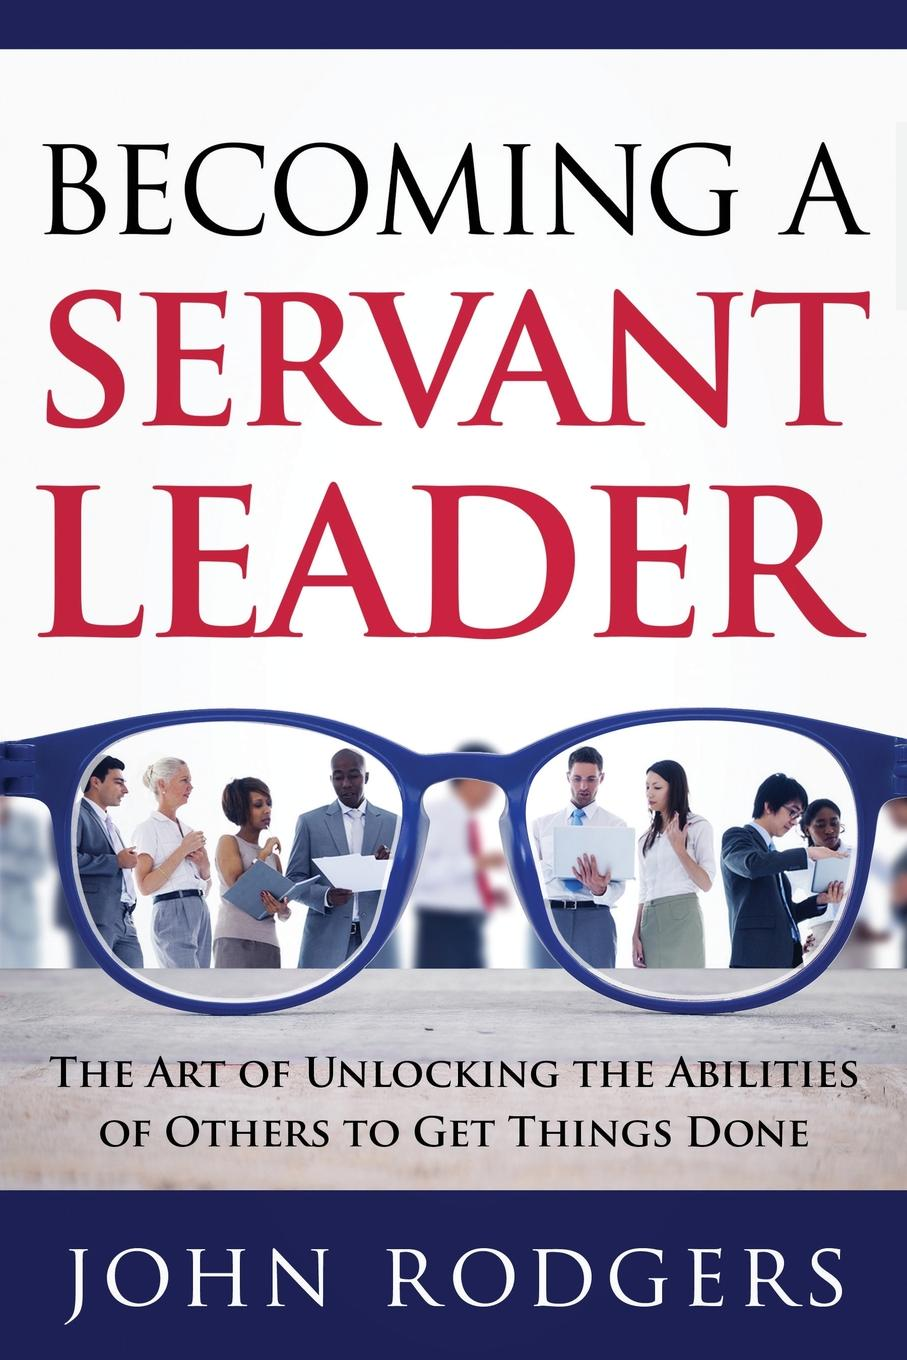 Фото - John Rodgers Becoming a Servant Leader. The Art of Unlocking the Abilities of Others to Get Things Done karissa thacker the art of authenticity tools to become an authentic leader and your best self